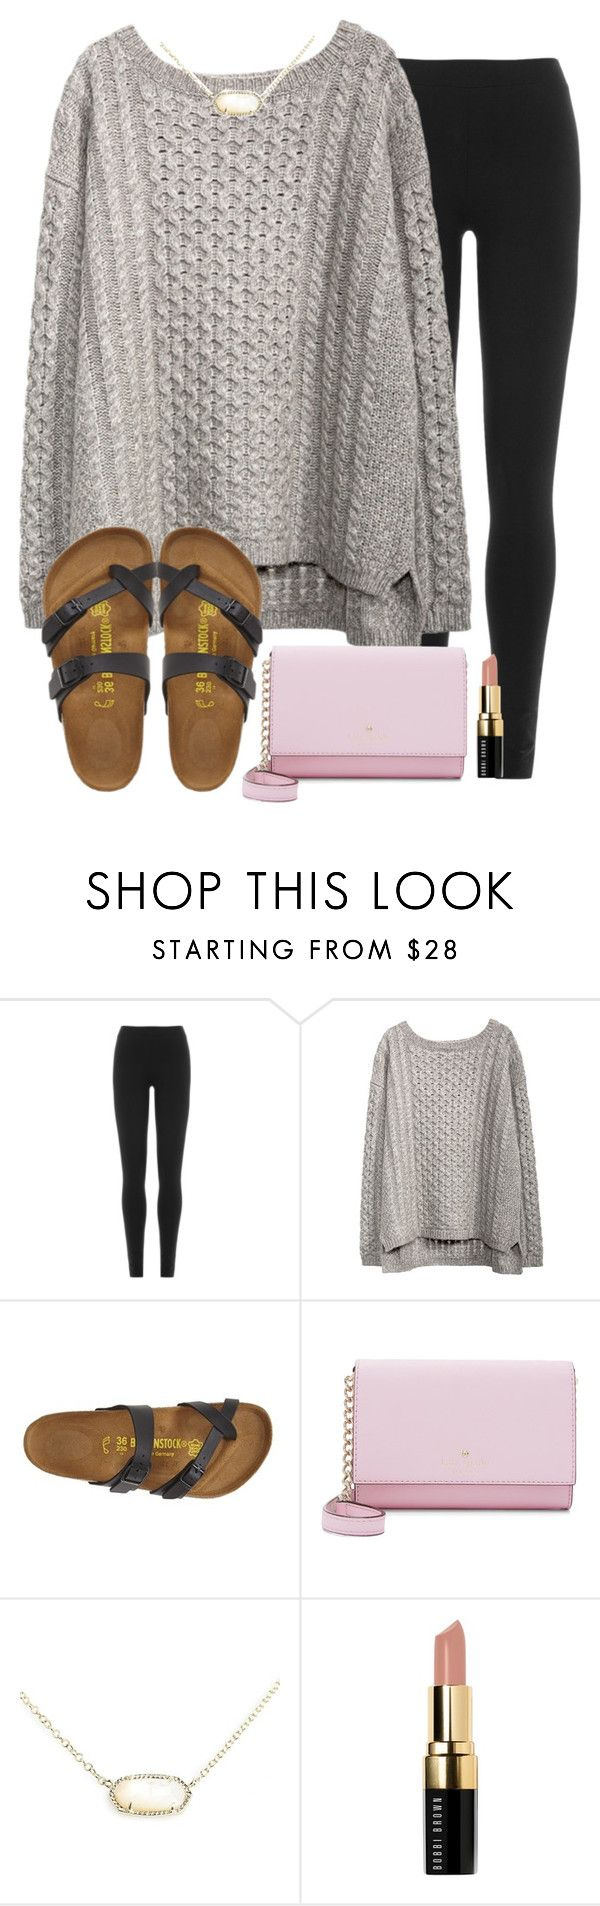 """weekly update in description!! plz read!!"" by madiweeksss ❤ liked on Polyvore featuring DKNY, Birkenstock, Kate Spade, Kendra Scott and Bobbi Brown Cosmetics"